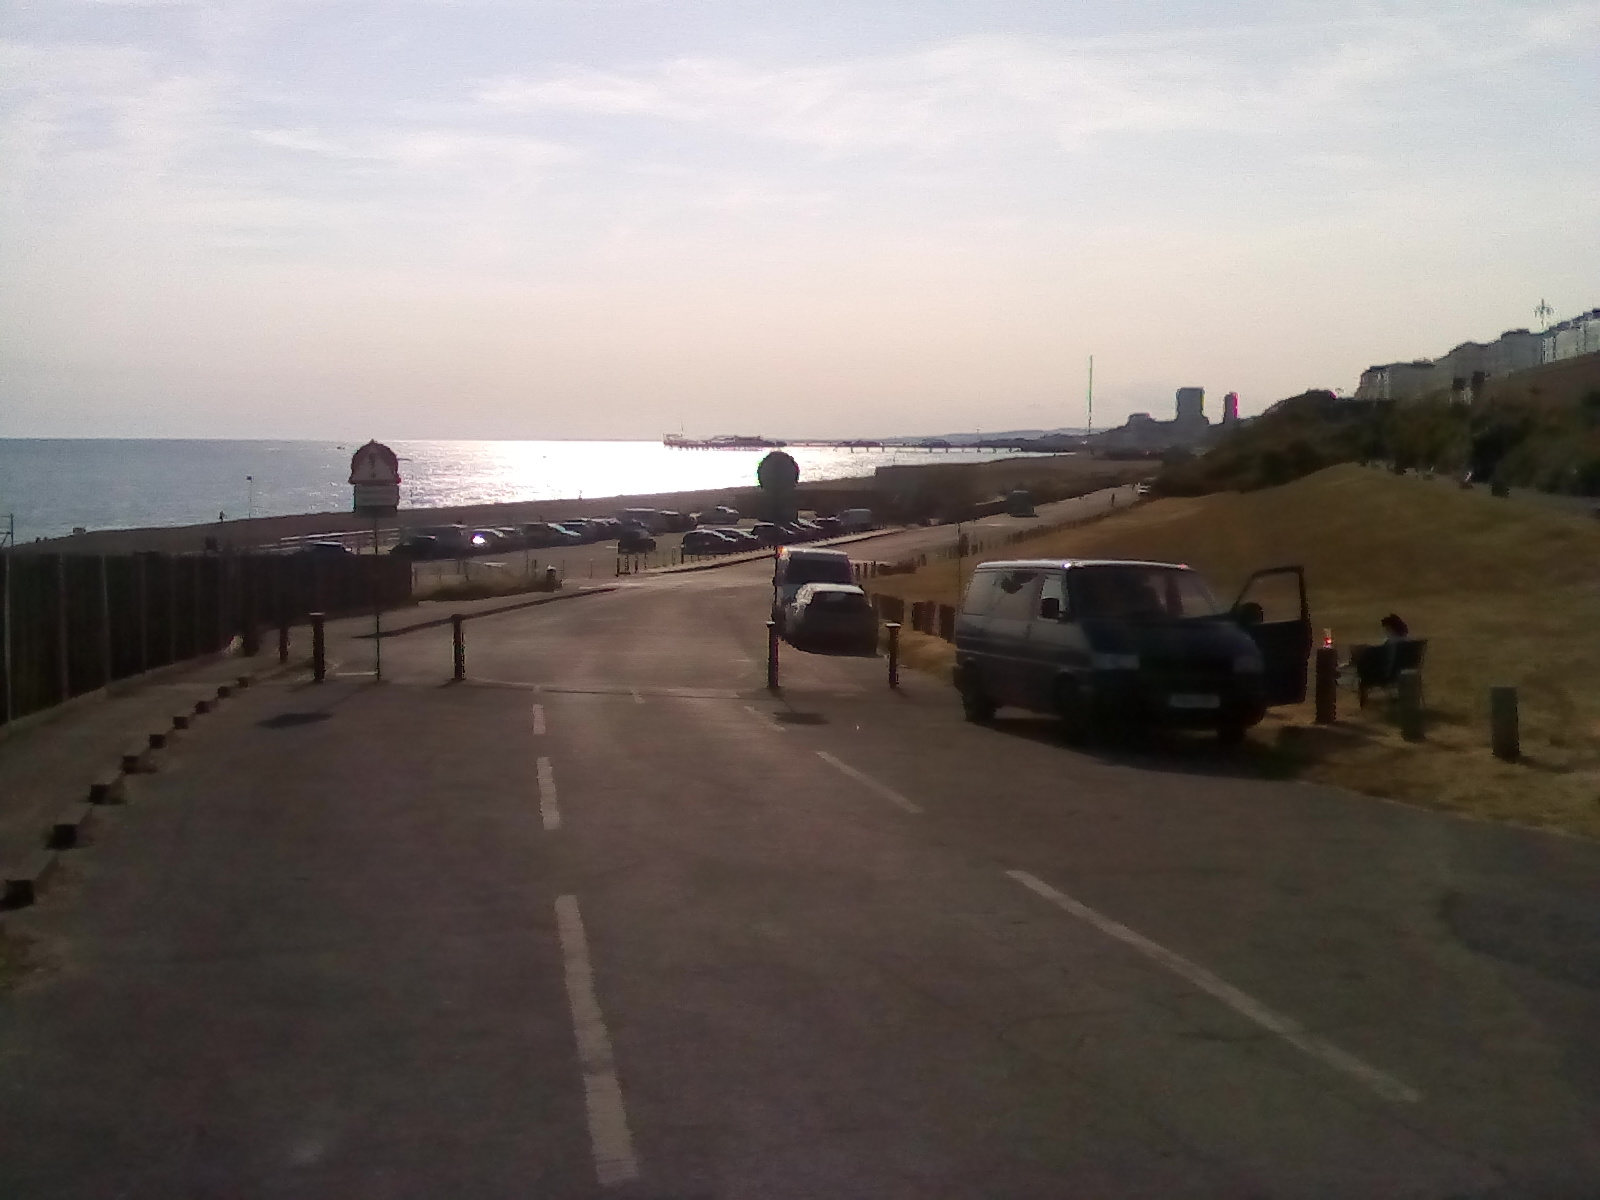 View towards Pier from East End of Madeira Drive